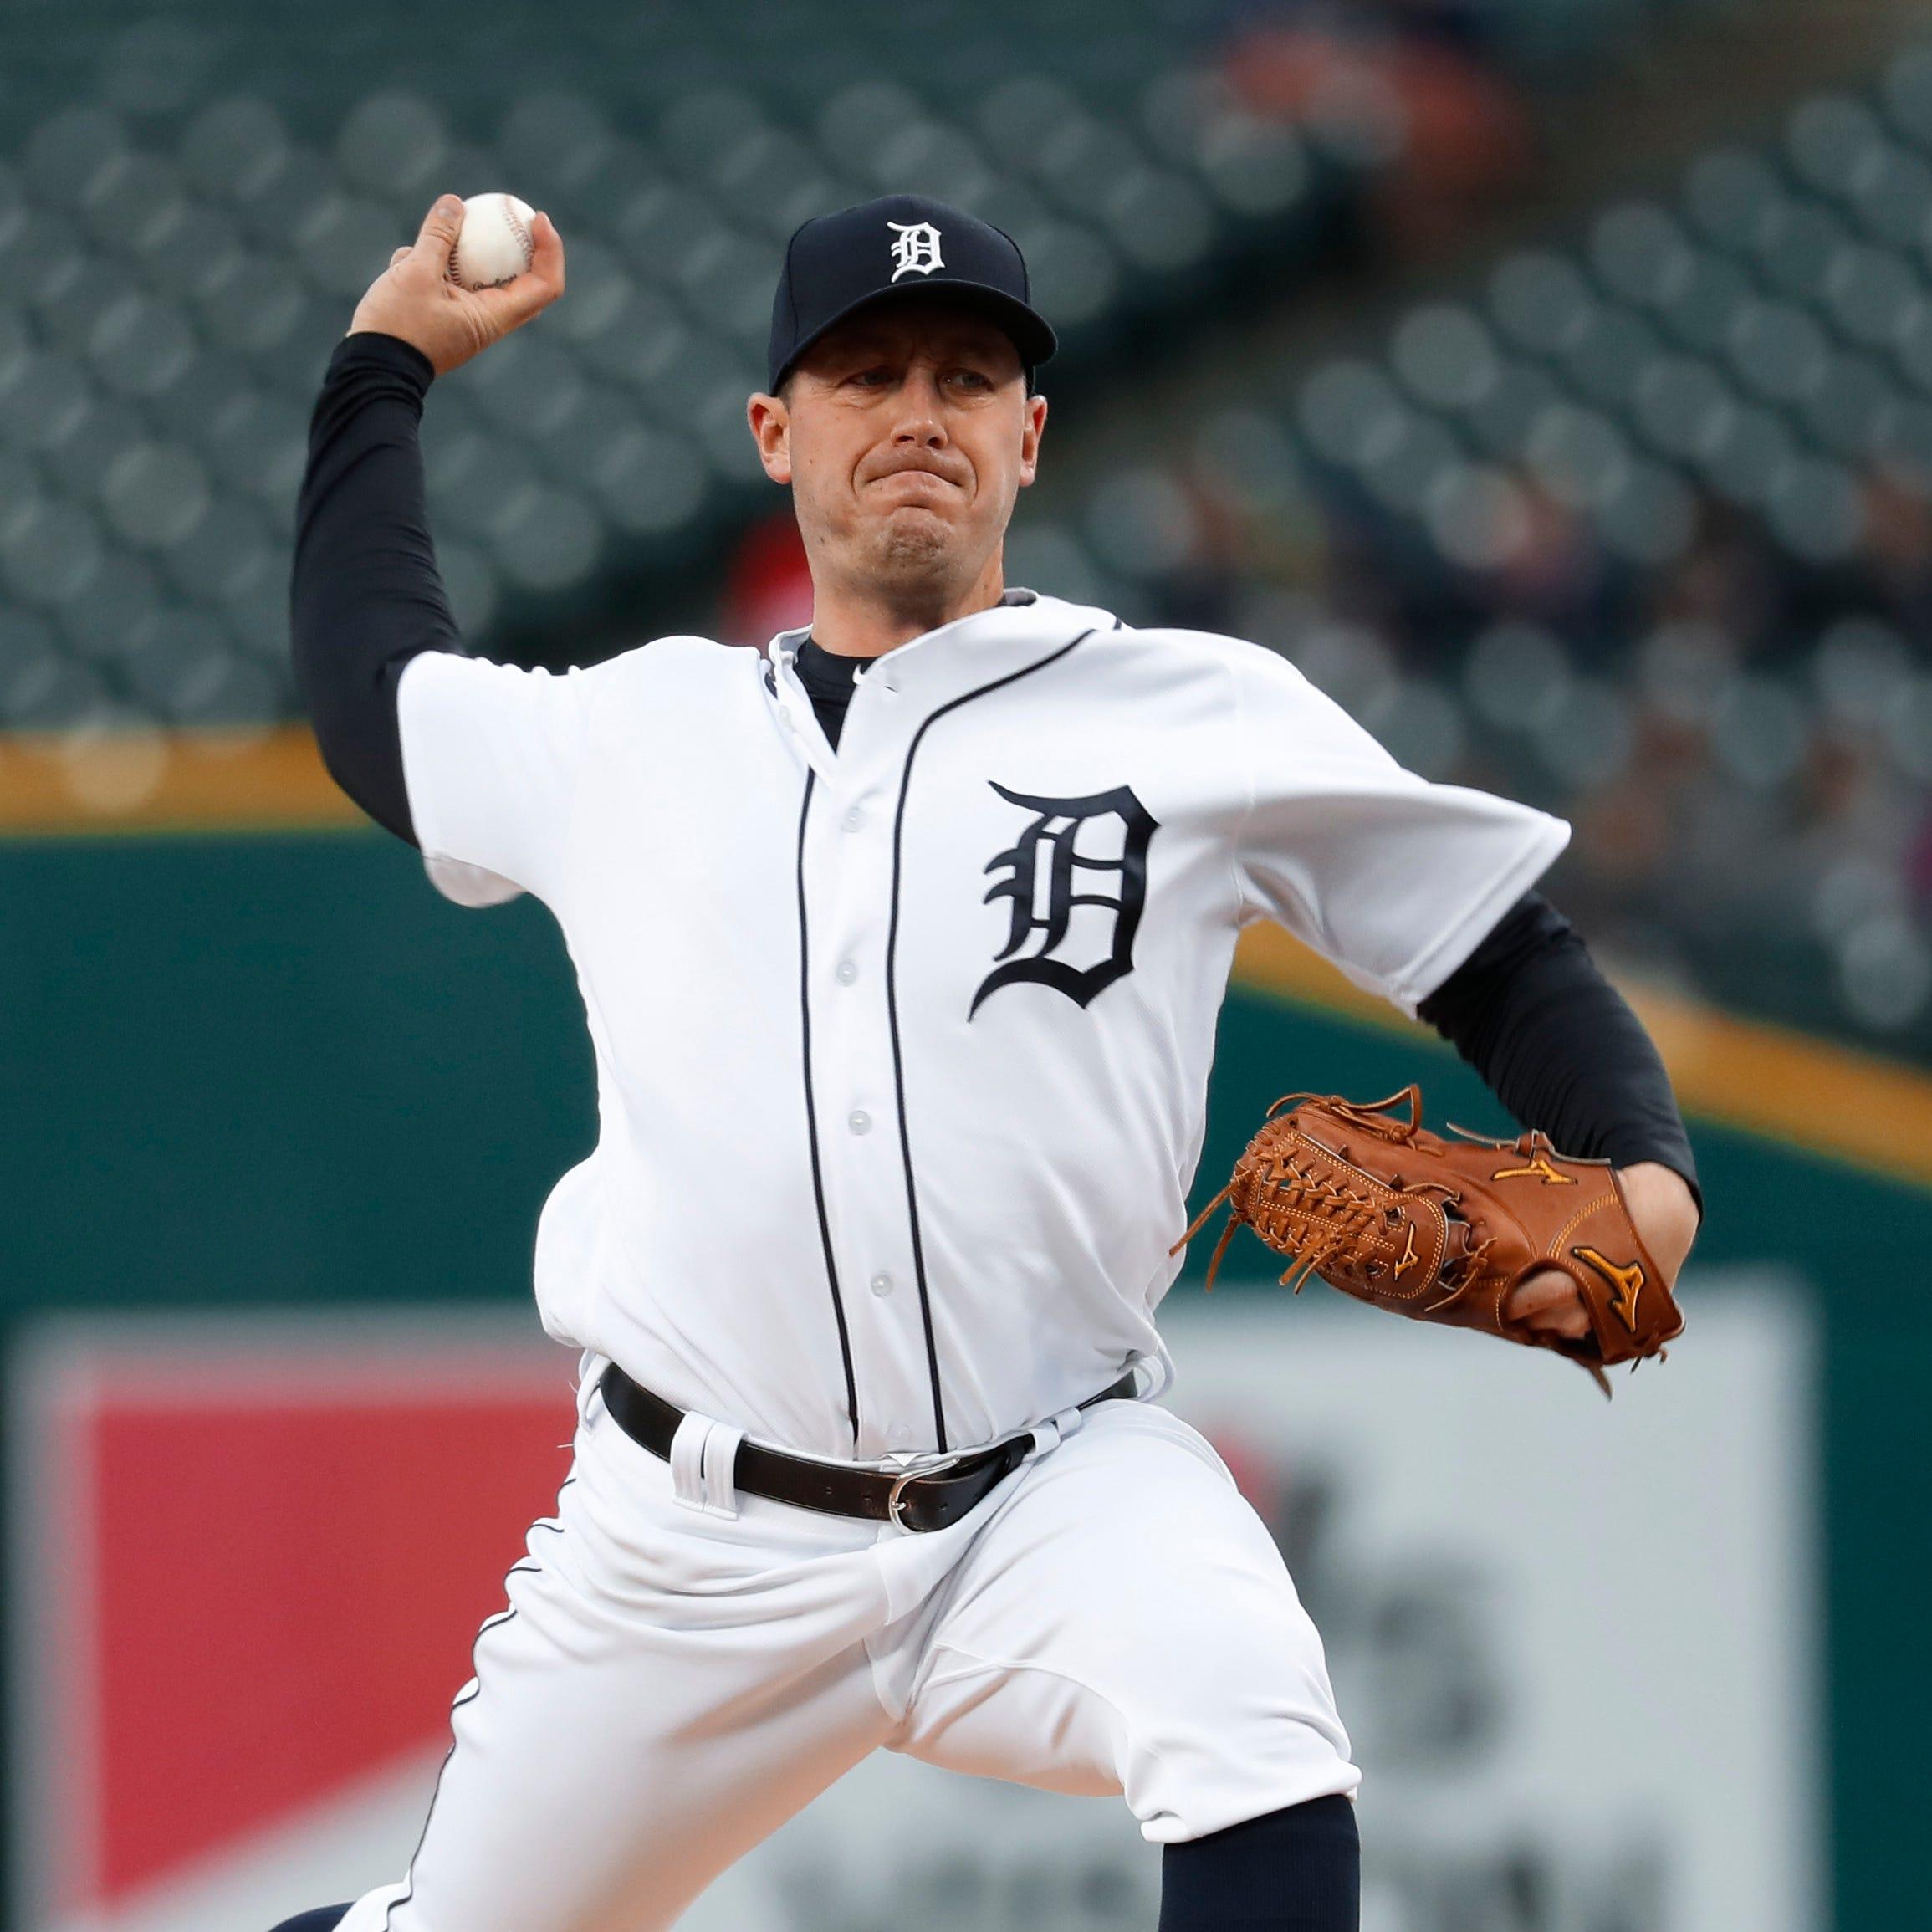 Jordan Zimmermann loses control, Tigers tumble below .500